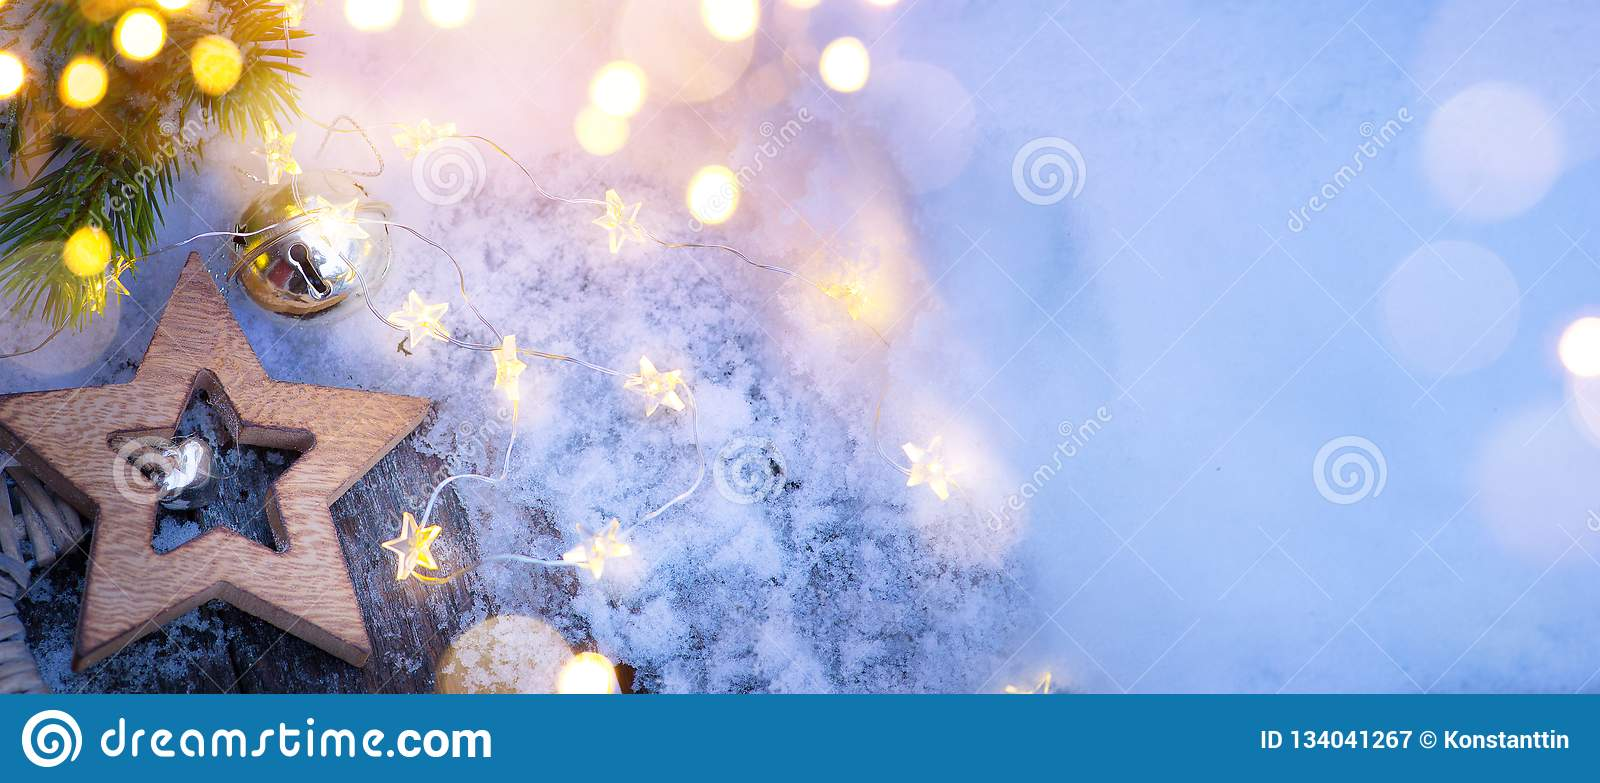 Merry Christmas blue snowy background and fir tree branches with holidays lights